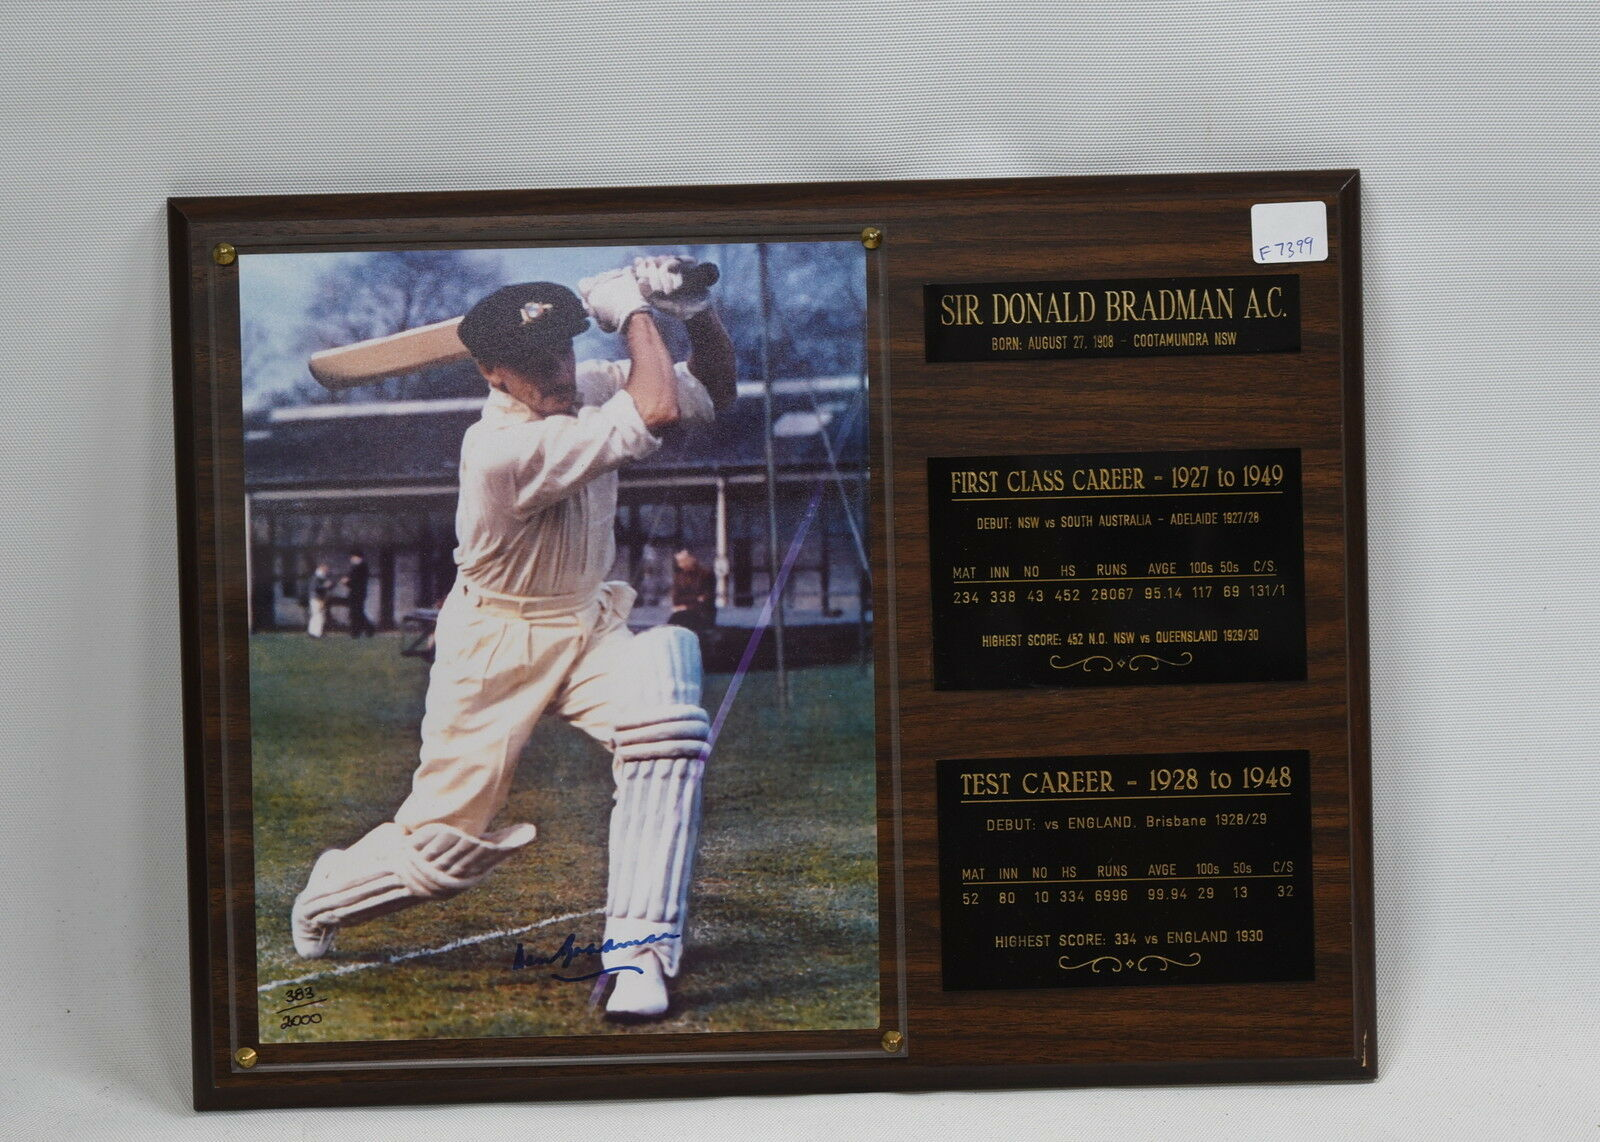 Sir Donald Bradman Signed and Framed Photograph - Number 383 2000 - Certificate